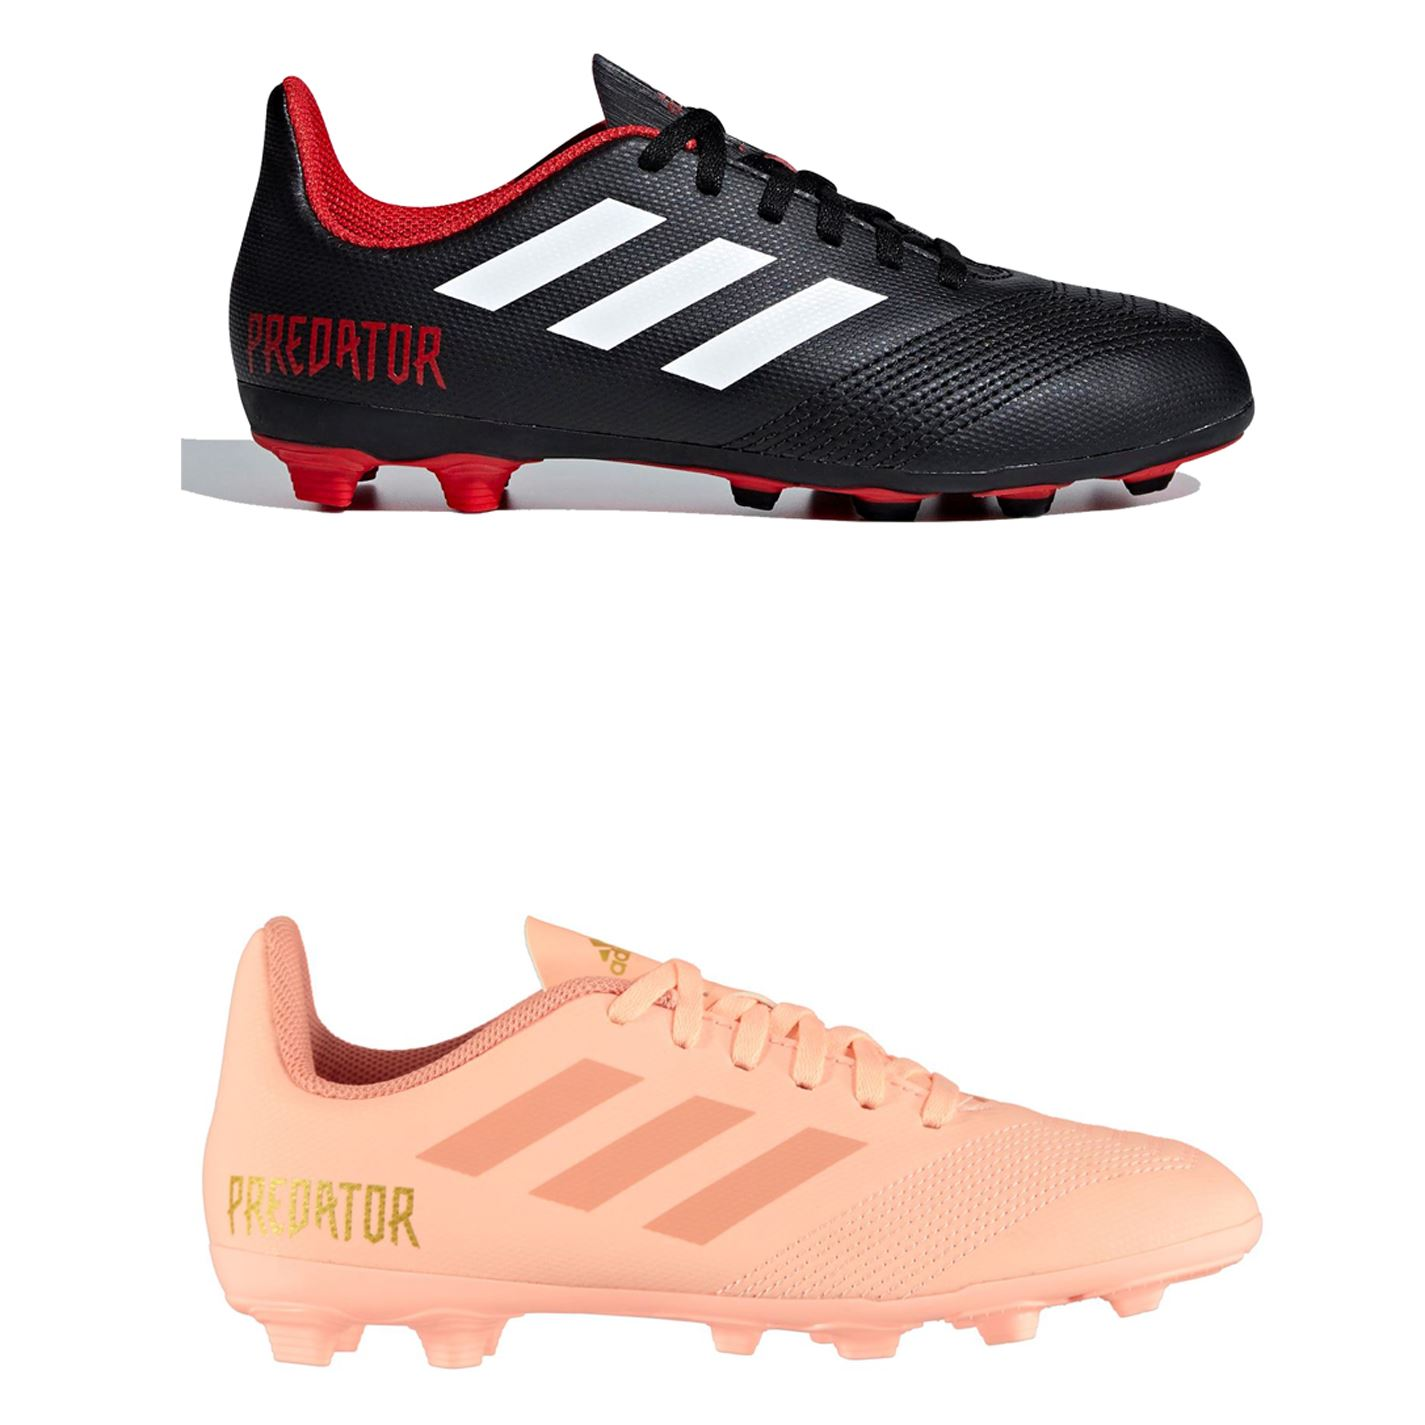 50fd3cbb2 ... adidas Predator 18.4 FG Firm Ground Football Boots Childs Soccer Shoes  Cleats ...